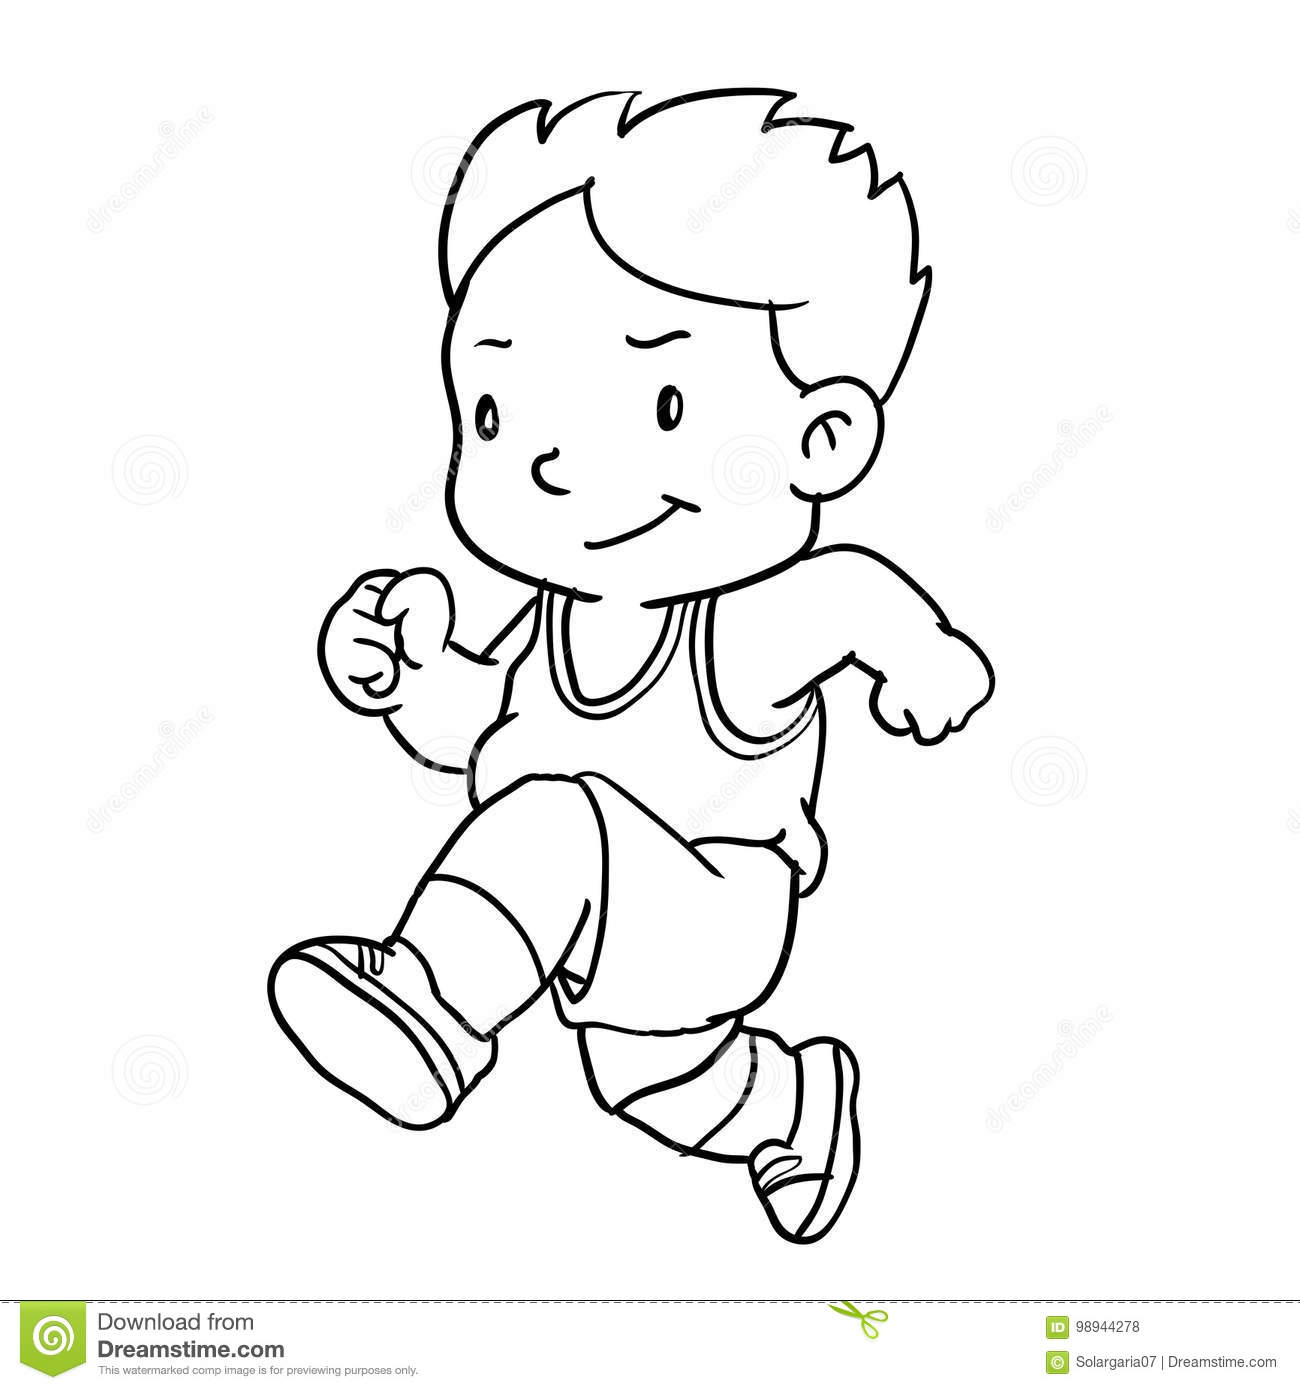 12c7b6150cf Hand drawing of boy runnin isolated on white background. Black and White  simple line Vector Illustration for Coloring Book - Line Drawn Vector